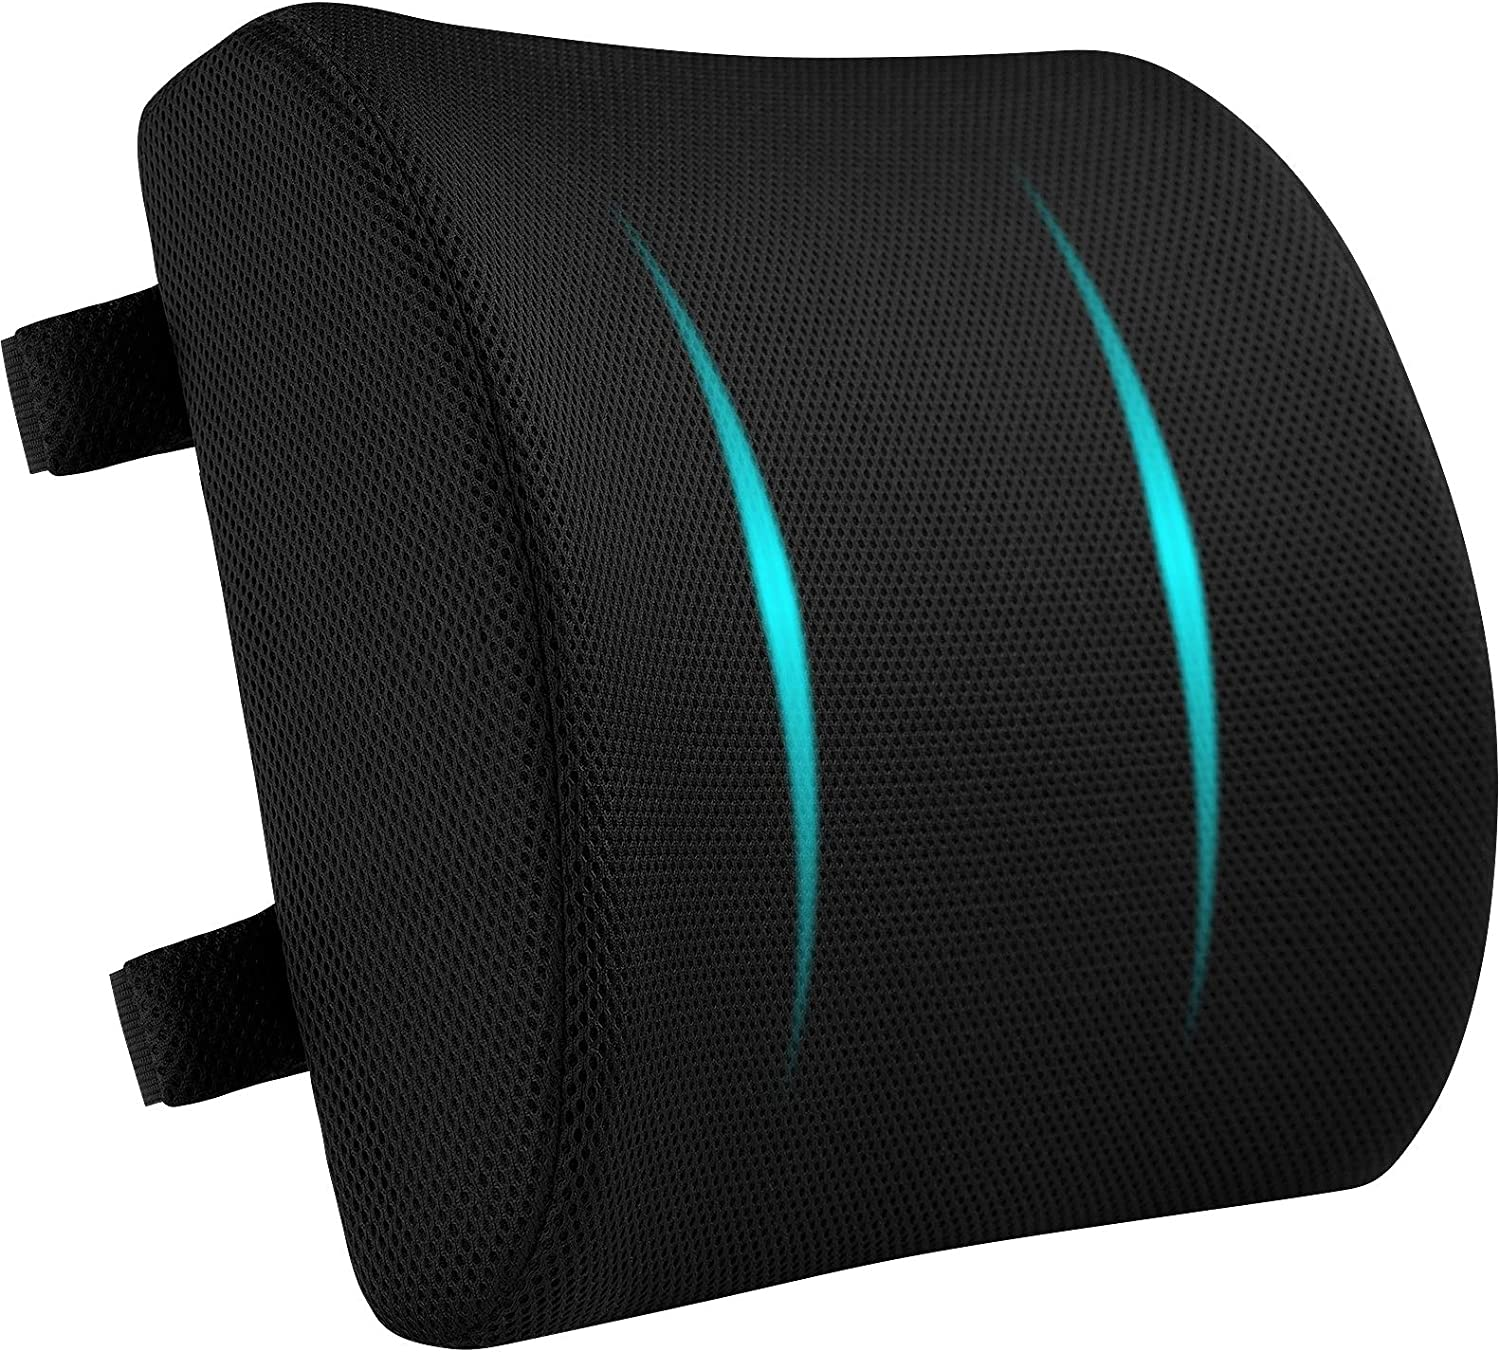 Lumbar Support Pillow for Back Pain Relief Ergonomic Back Pillow for ofice Chairs Memory Foam Backrest for Home Office Car Computer Desk Recliner, Breathable 3D Mesh Cover Black